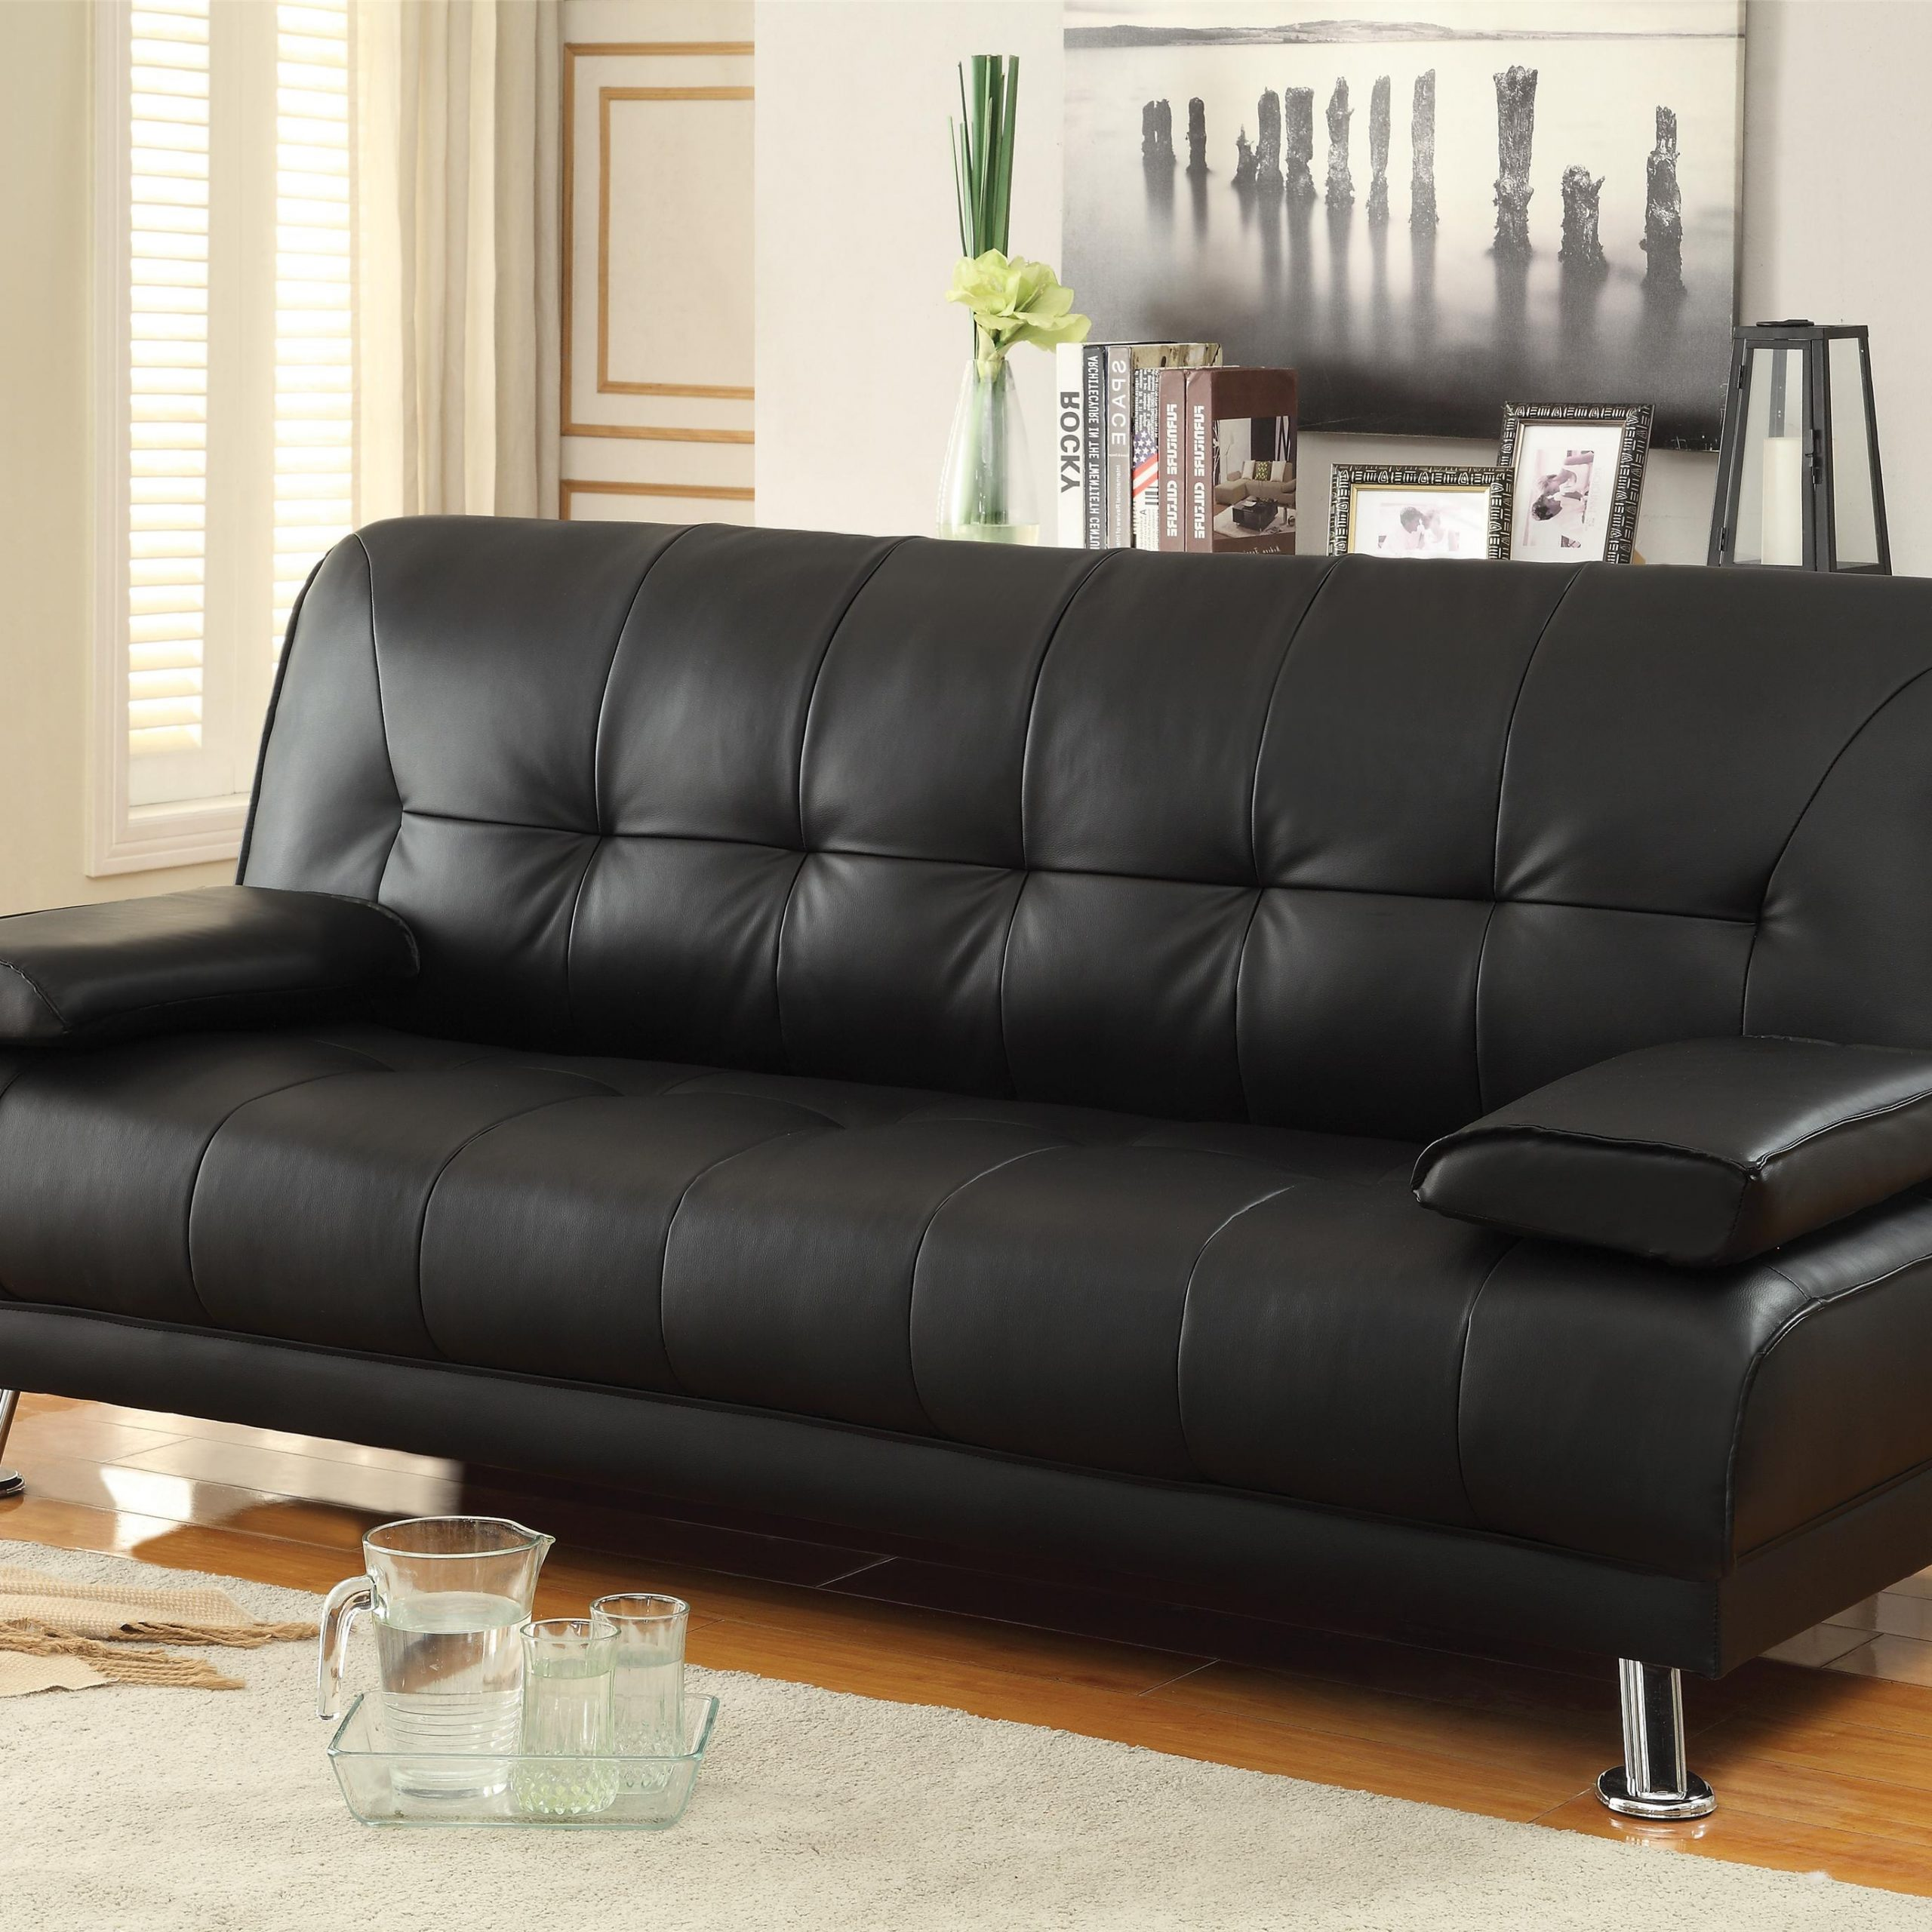 Current Celine Sectional Futon Sofas With Storage Reclining Couch Within Sofa Beds And Futons Faux Leather Convertible Sofa Bed (View 1 of 25)